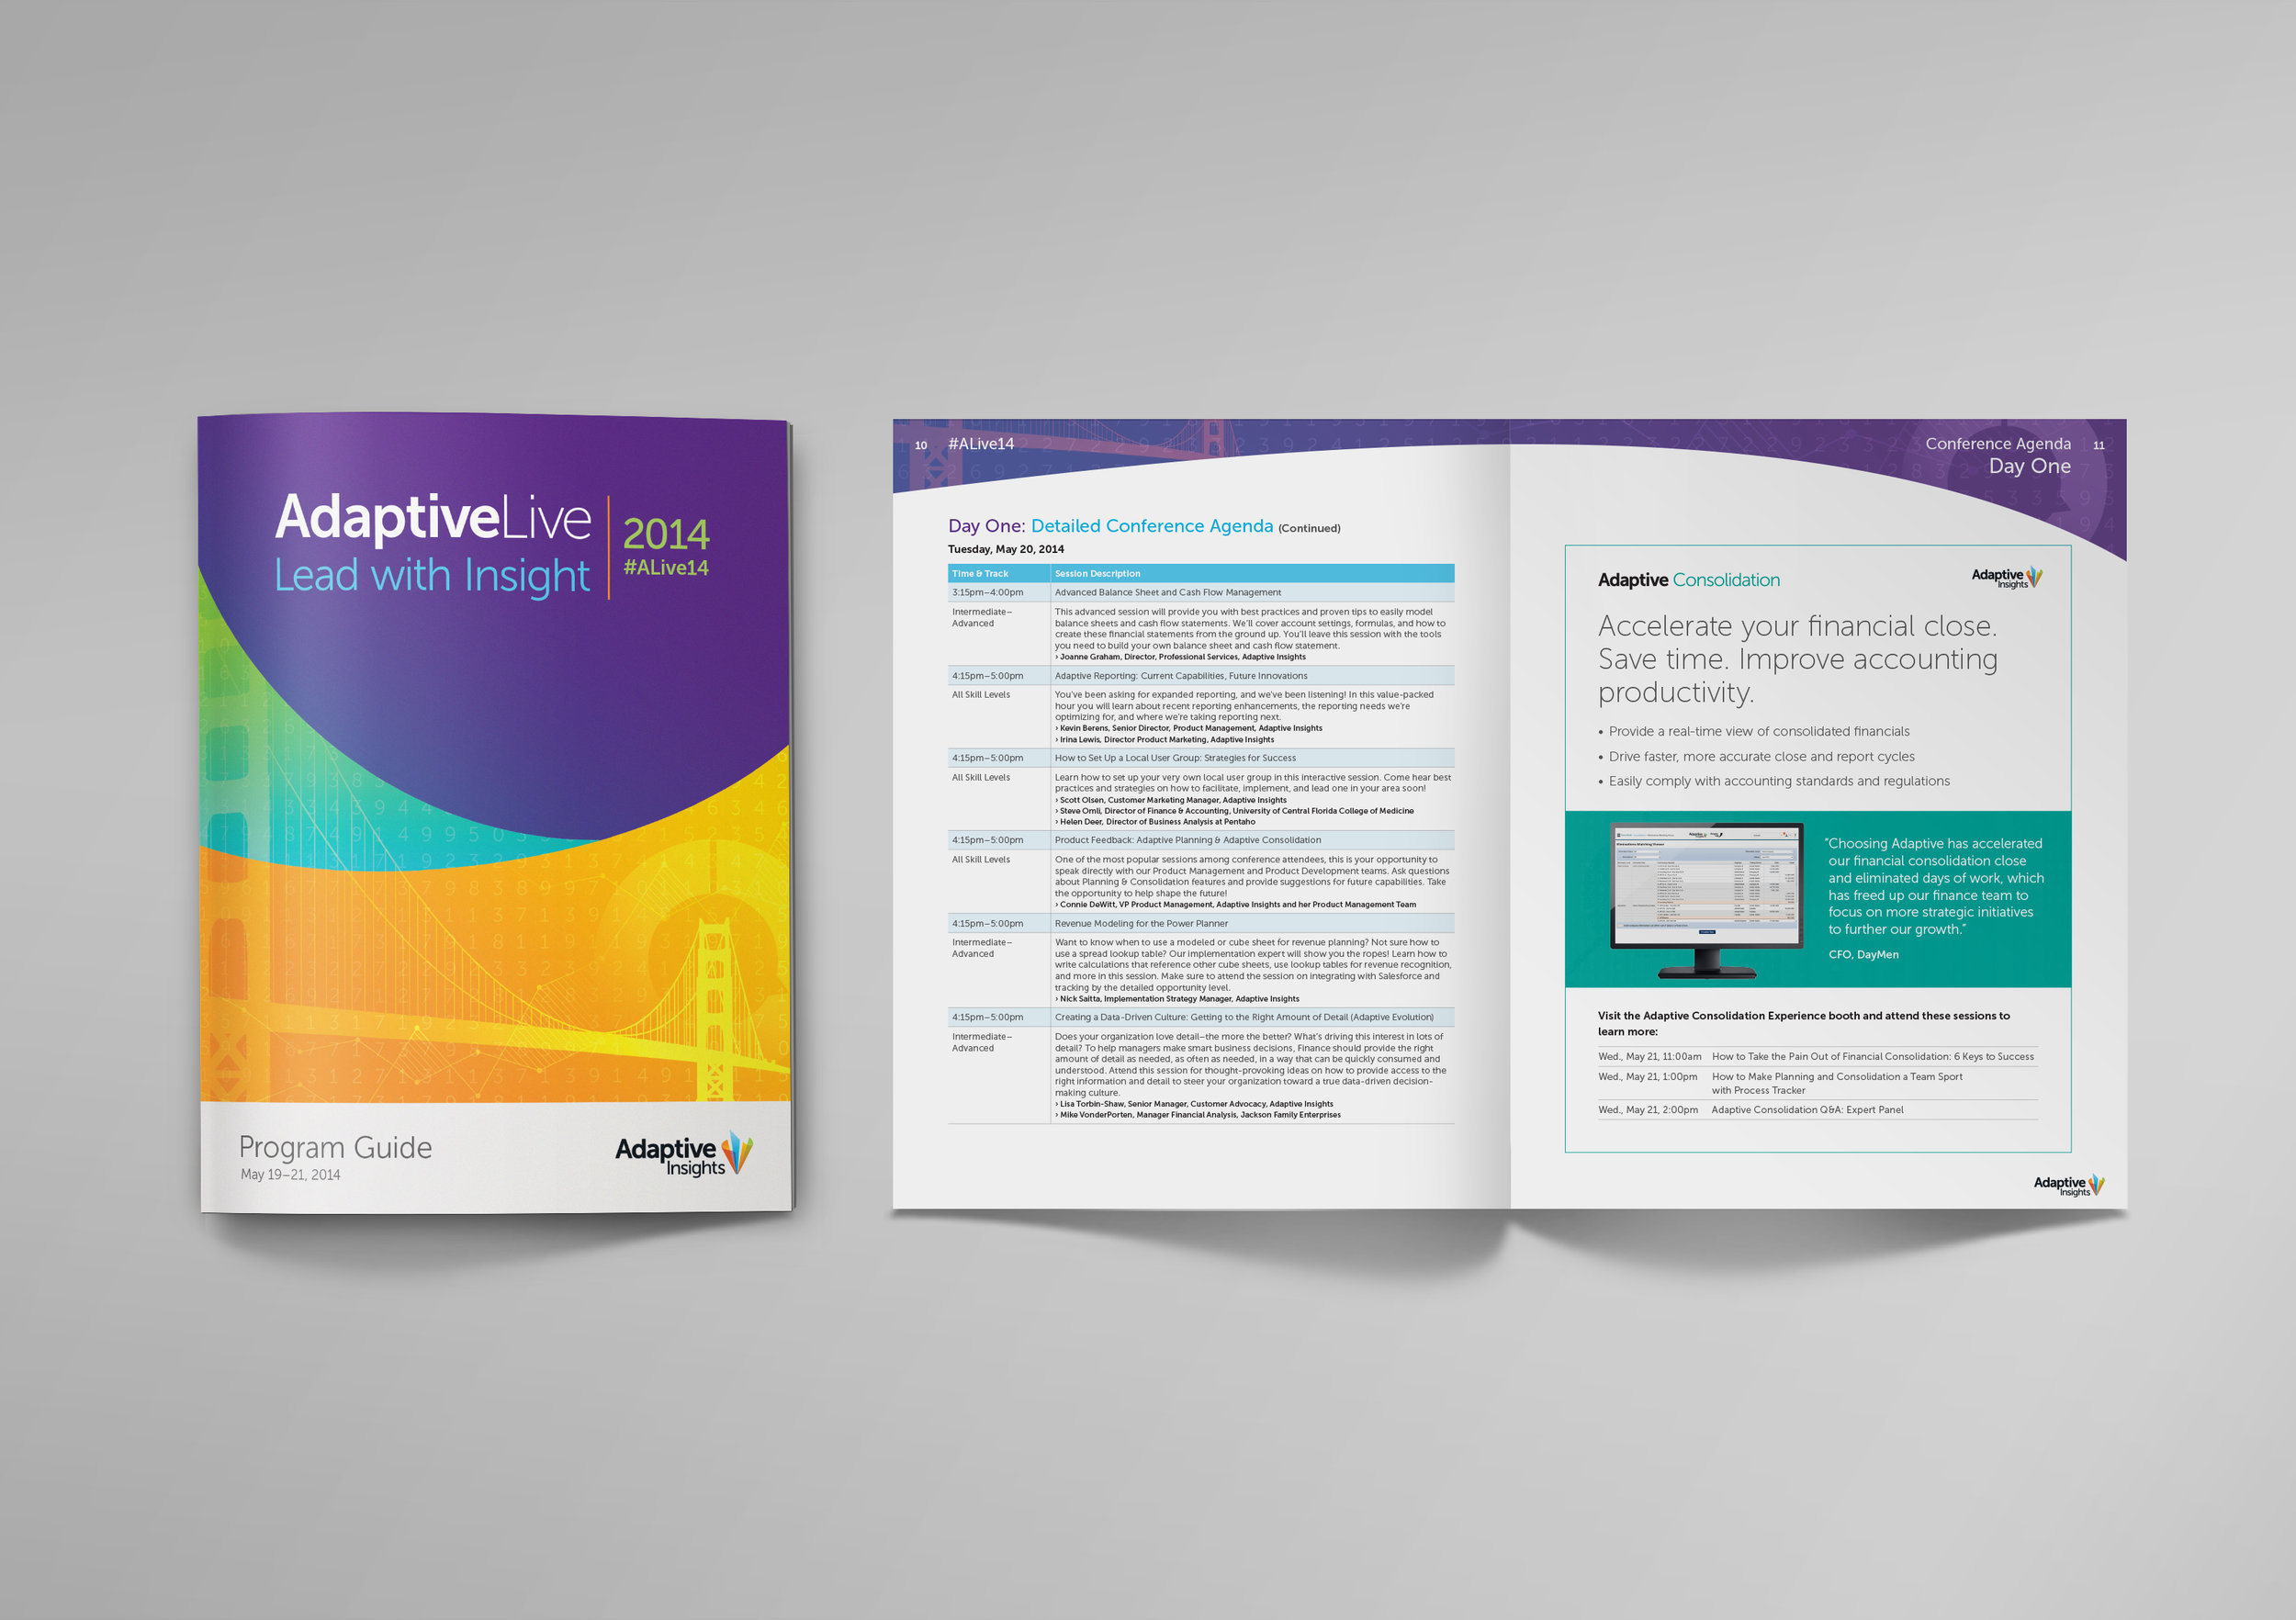 ADAP_LIVE_cover and spread.jpg